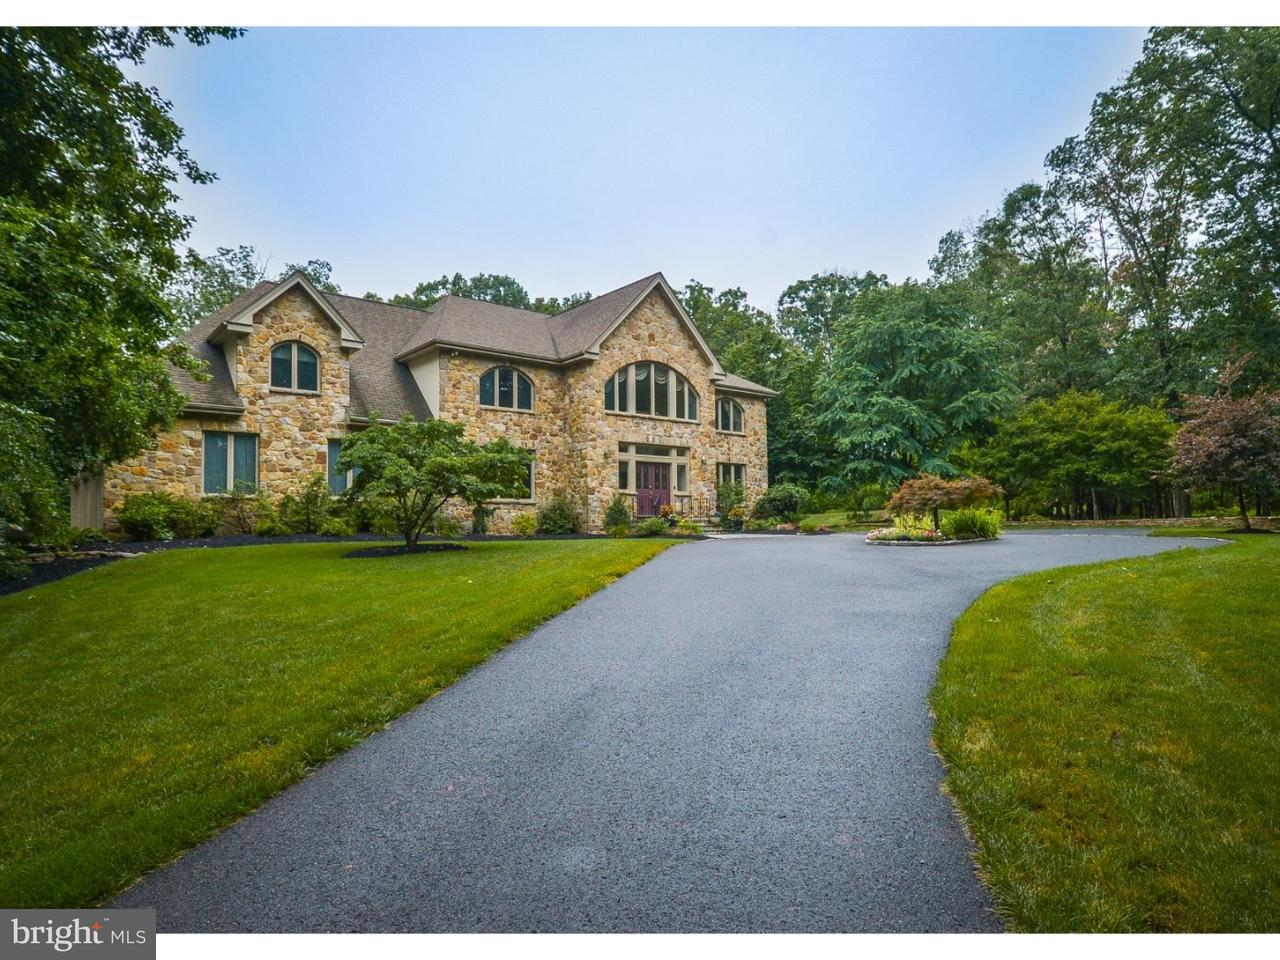 Single Family Home for Sale at 172 WHITE PINE WAY Harleysville, Pennsylvania 19438 United States